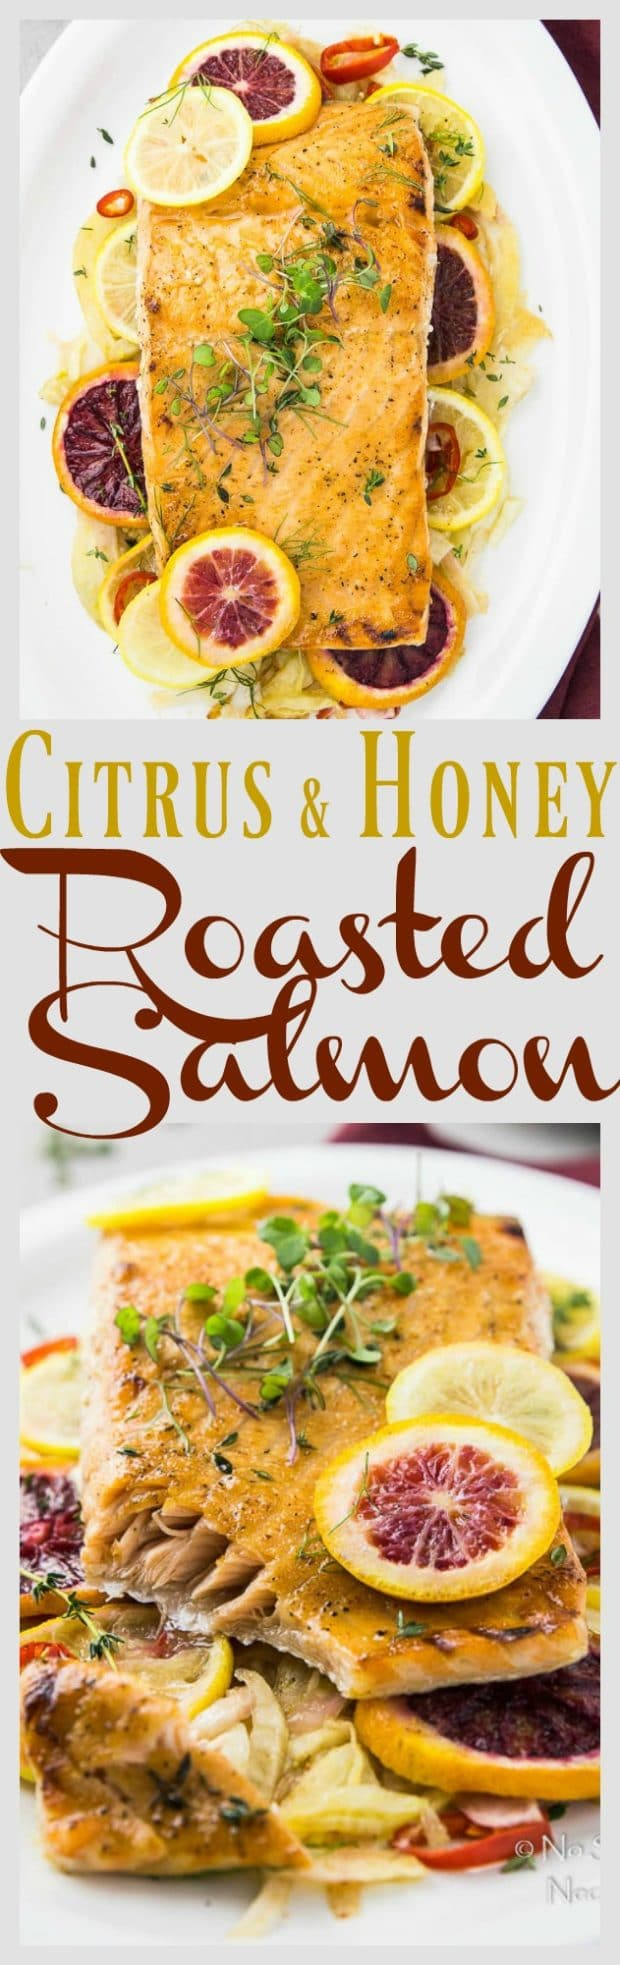 Citrus & Honey Roasted Salmon-long pin2